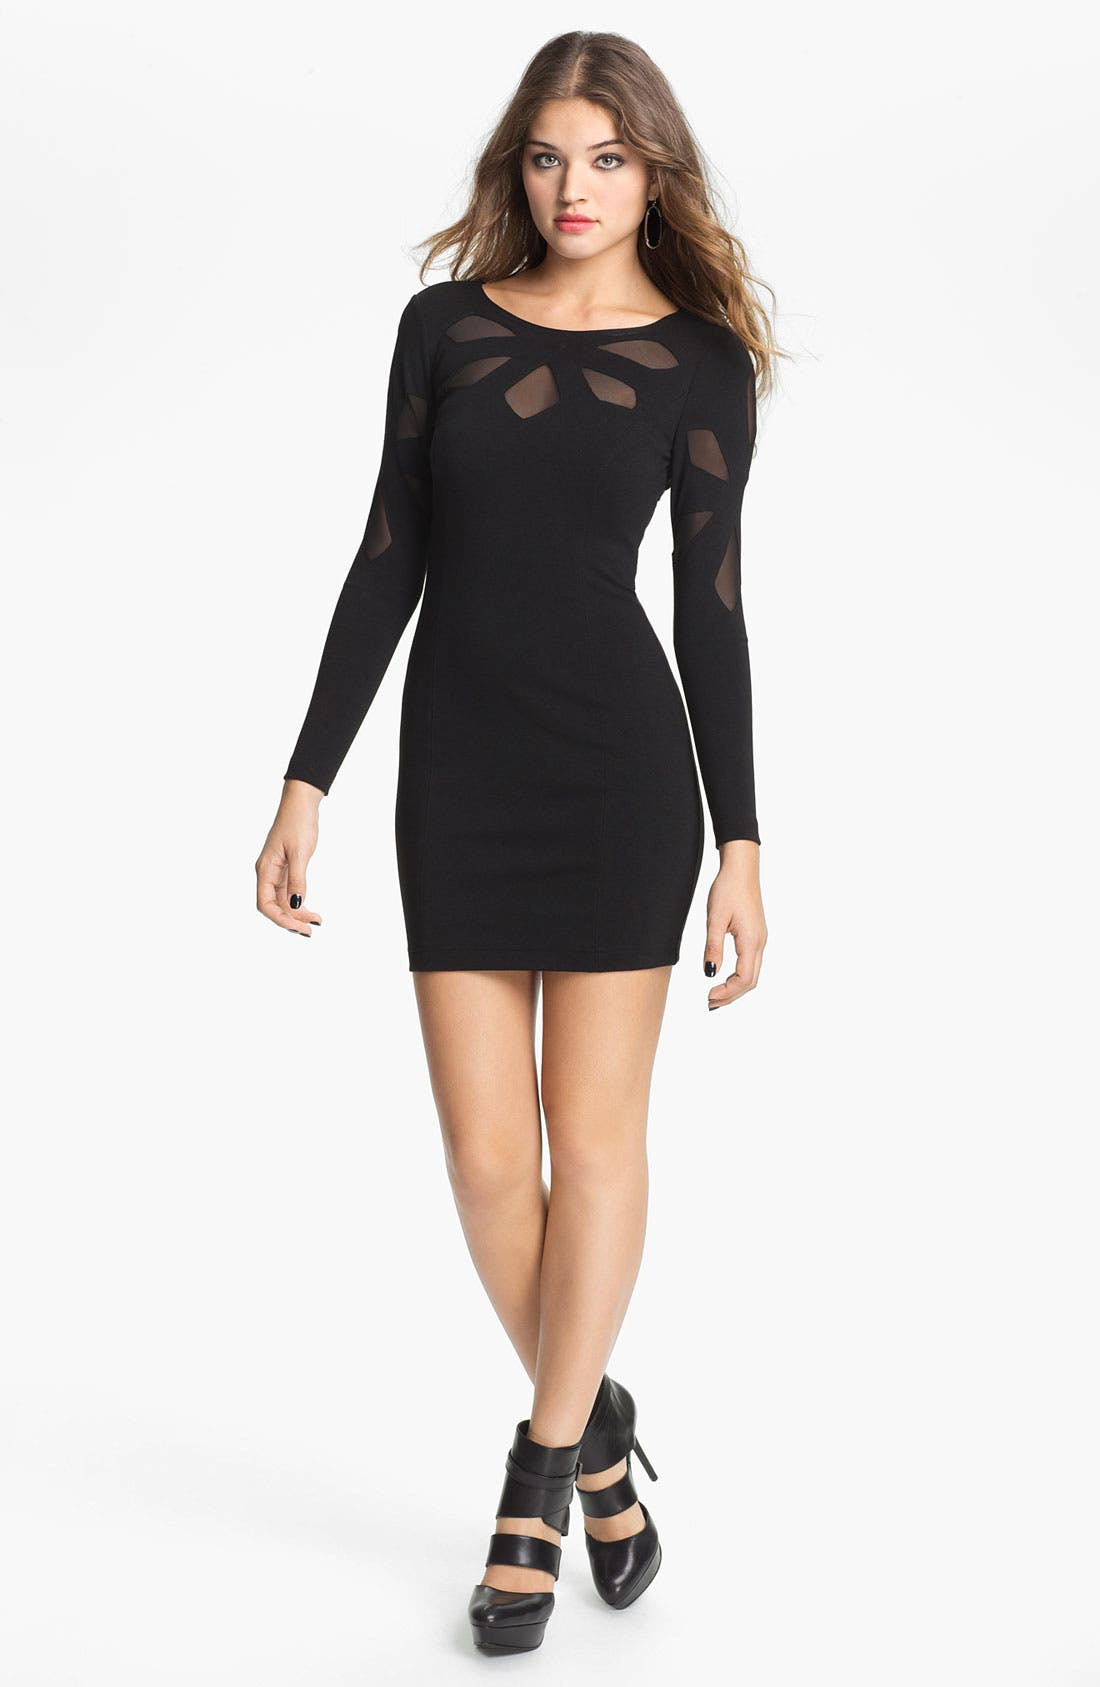 Alternate Image 1 Selected - Keepsake the Label 'Love Out of Lust' Long Sleeve Minidress